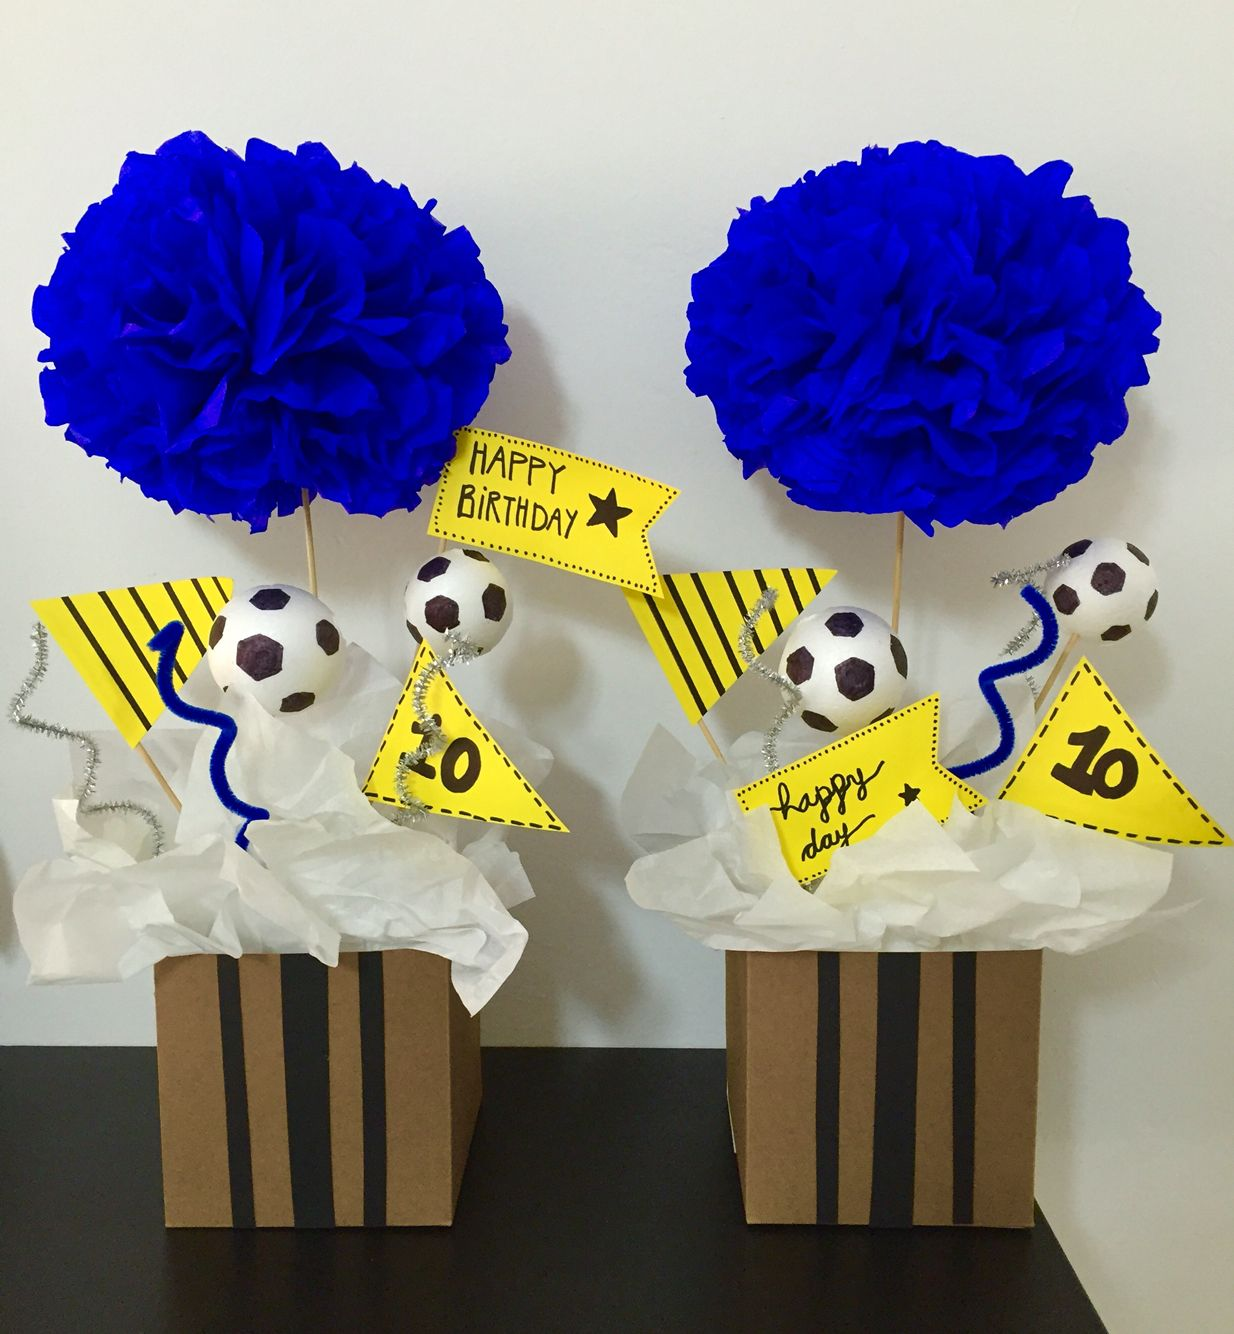 Centros de mesa real madrid party 10th birthday pinterest real madrid madrid and birthdays - Real madrid decorations ...